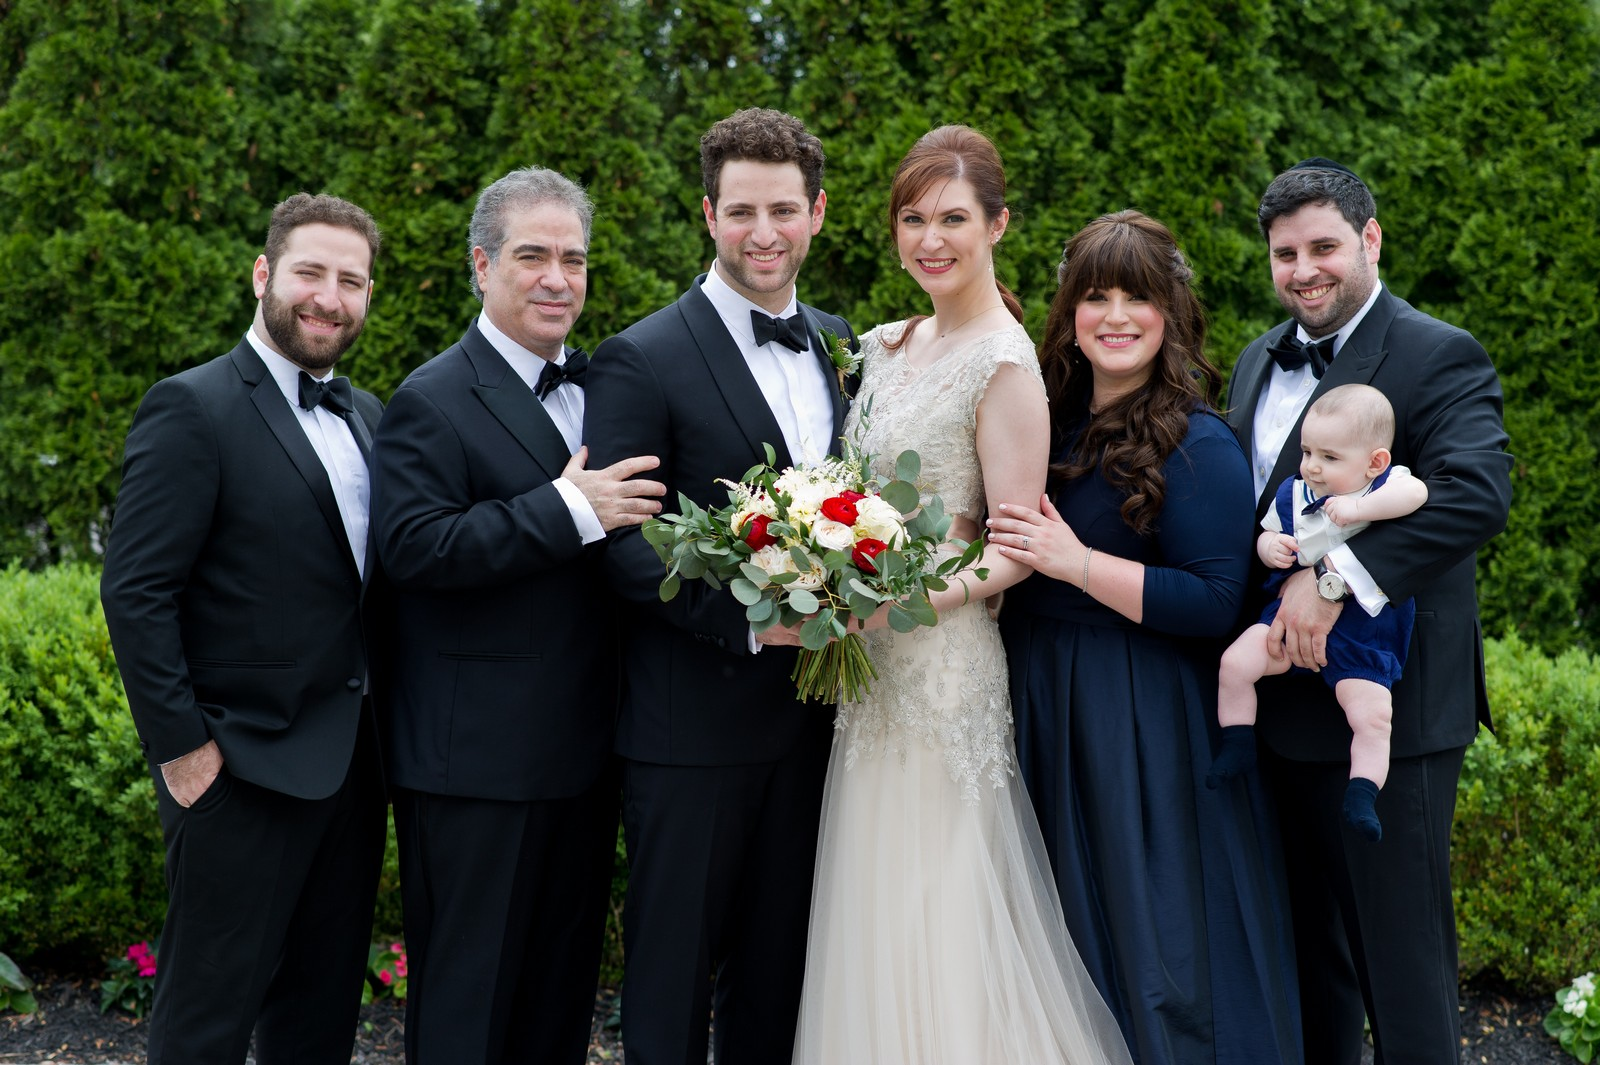 Yoey and Aaron's Memorial Day Modern Jewish Wedding at Anthony's Pier 9, New Windsor, NY Photos by Chaim Schvarcz groom family portraits